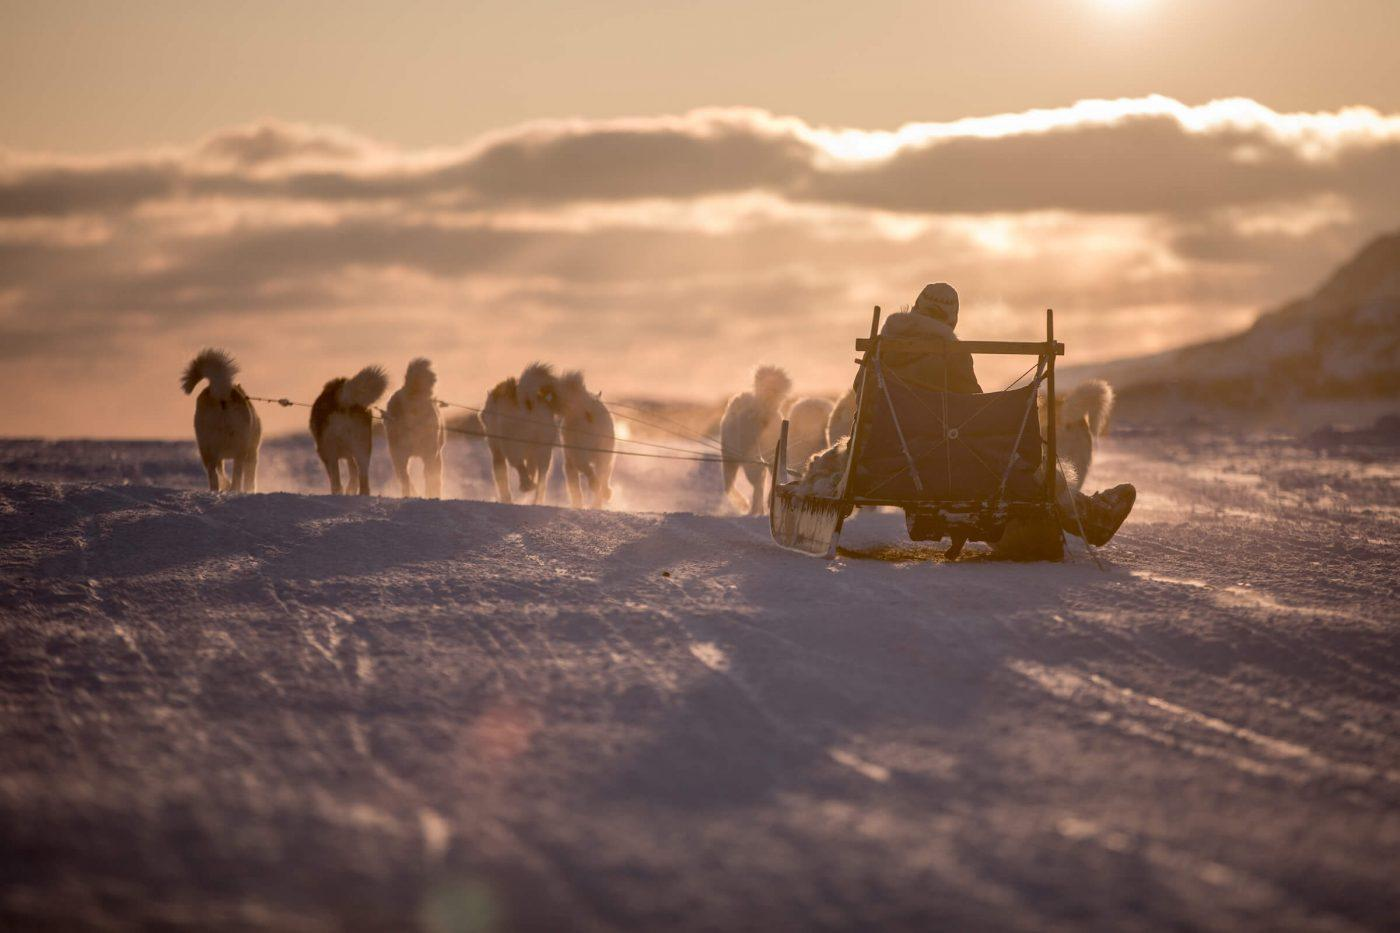 A dog sled heading into the sunset near Sisimiut in Greenland. By Mads Pihl